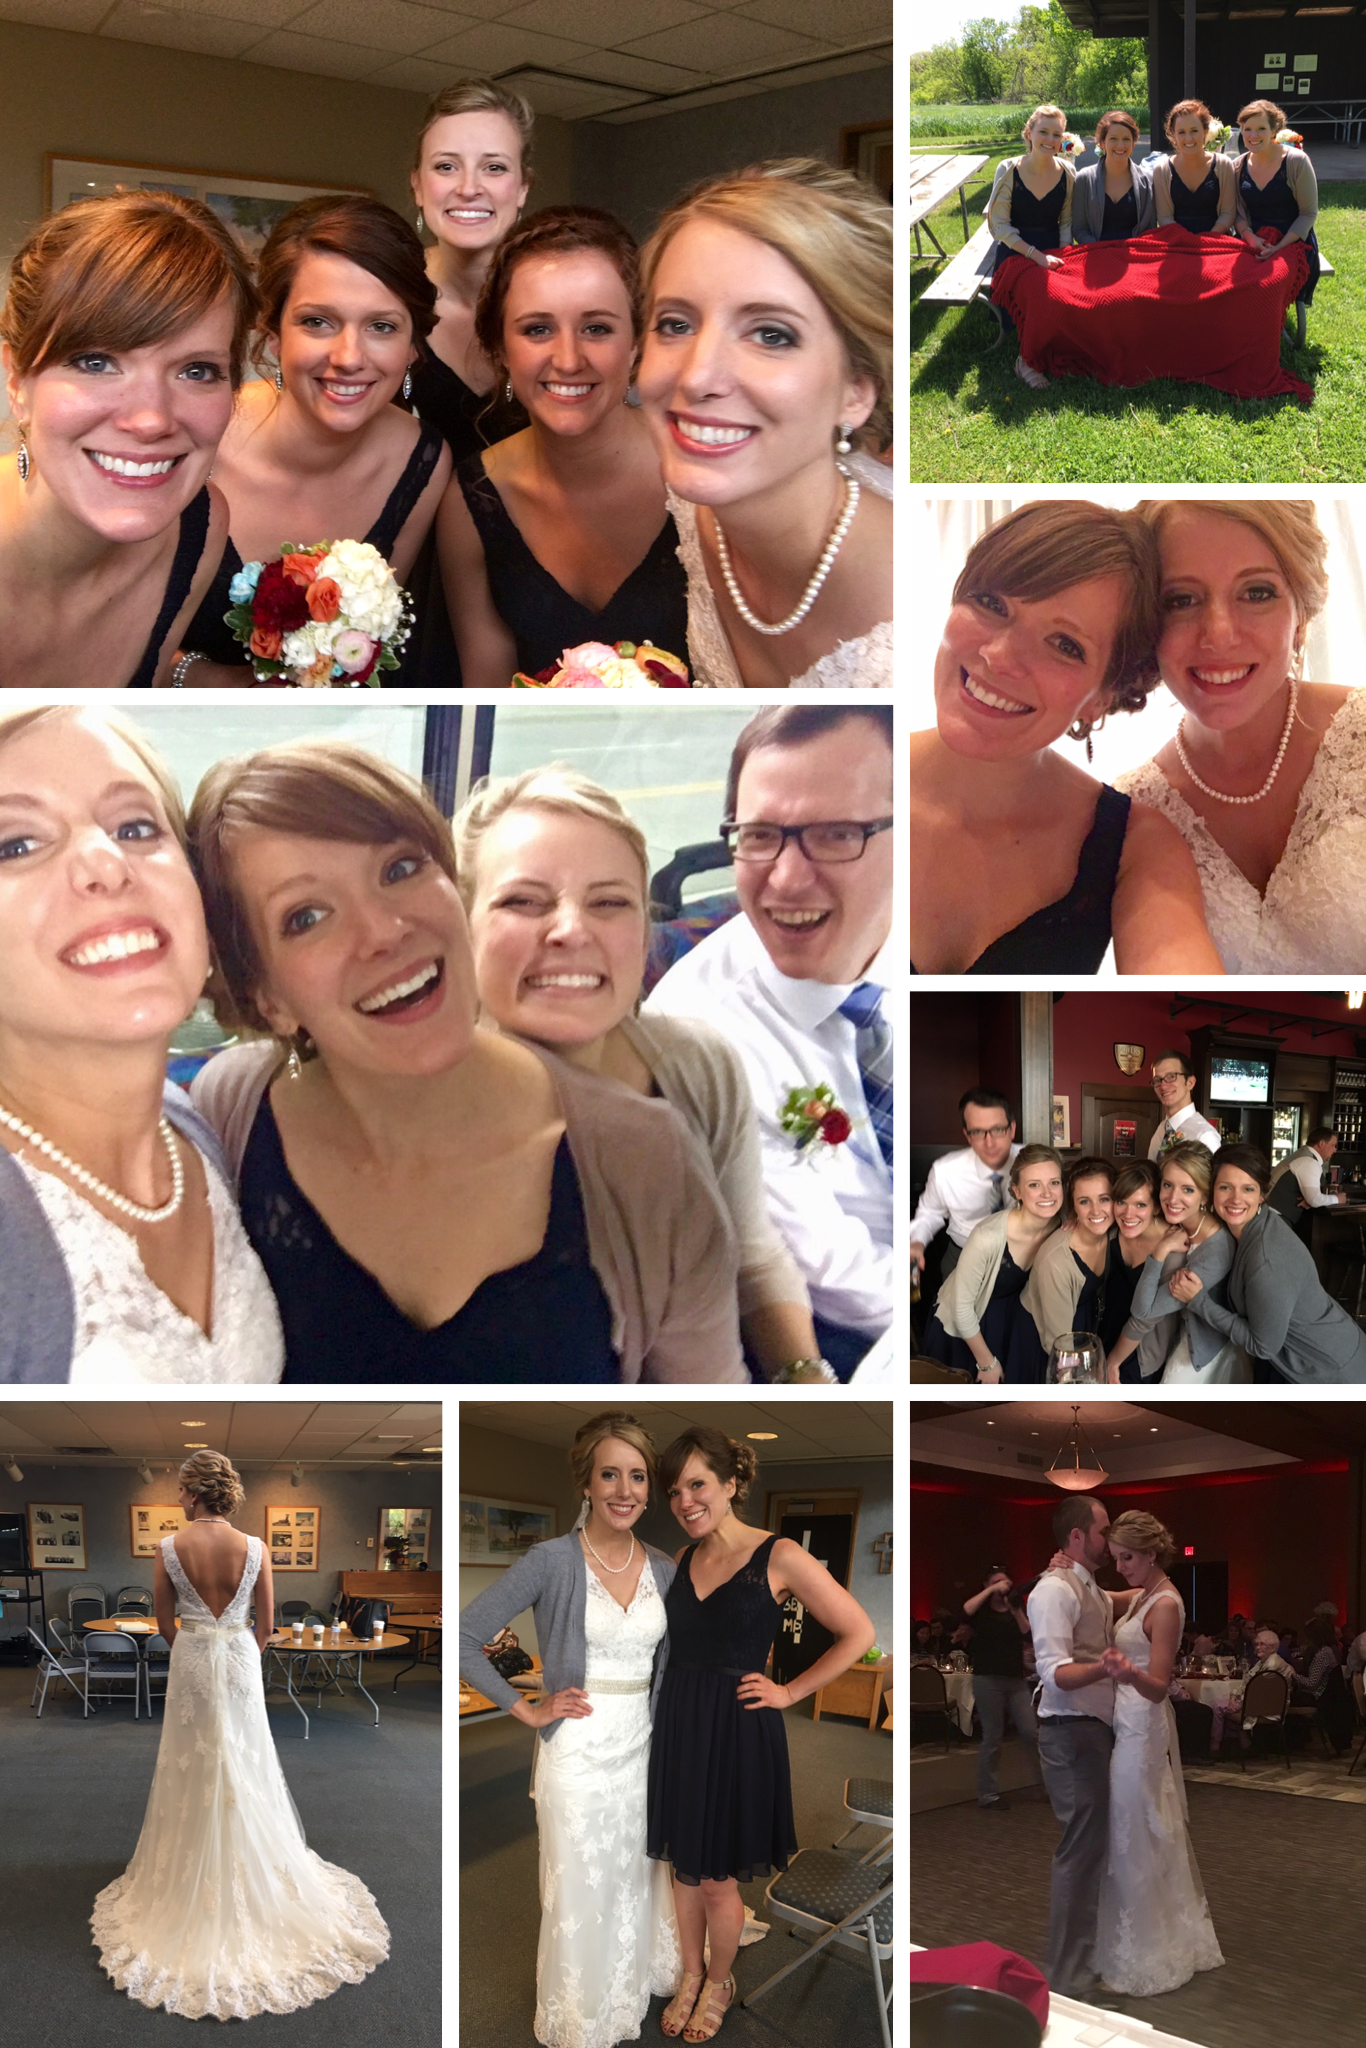 Jaci's wedding